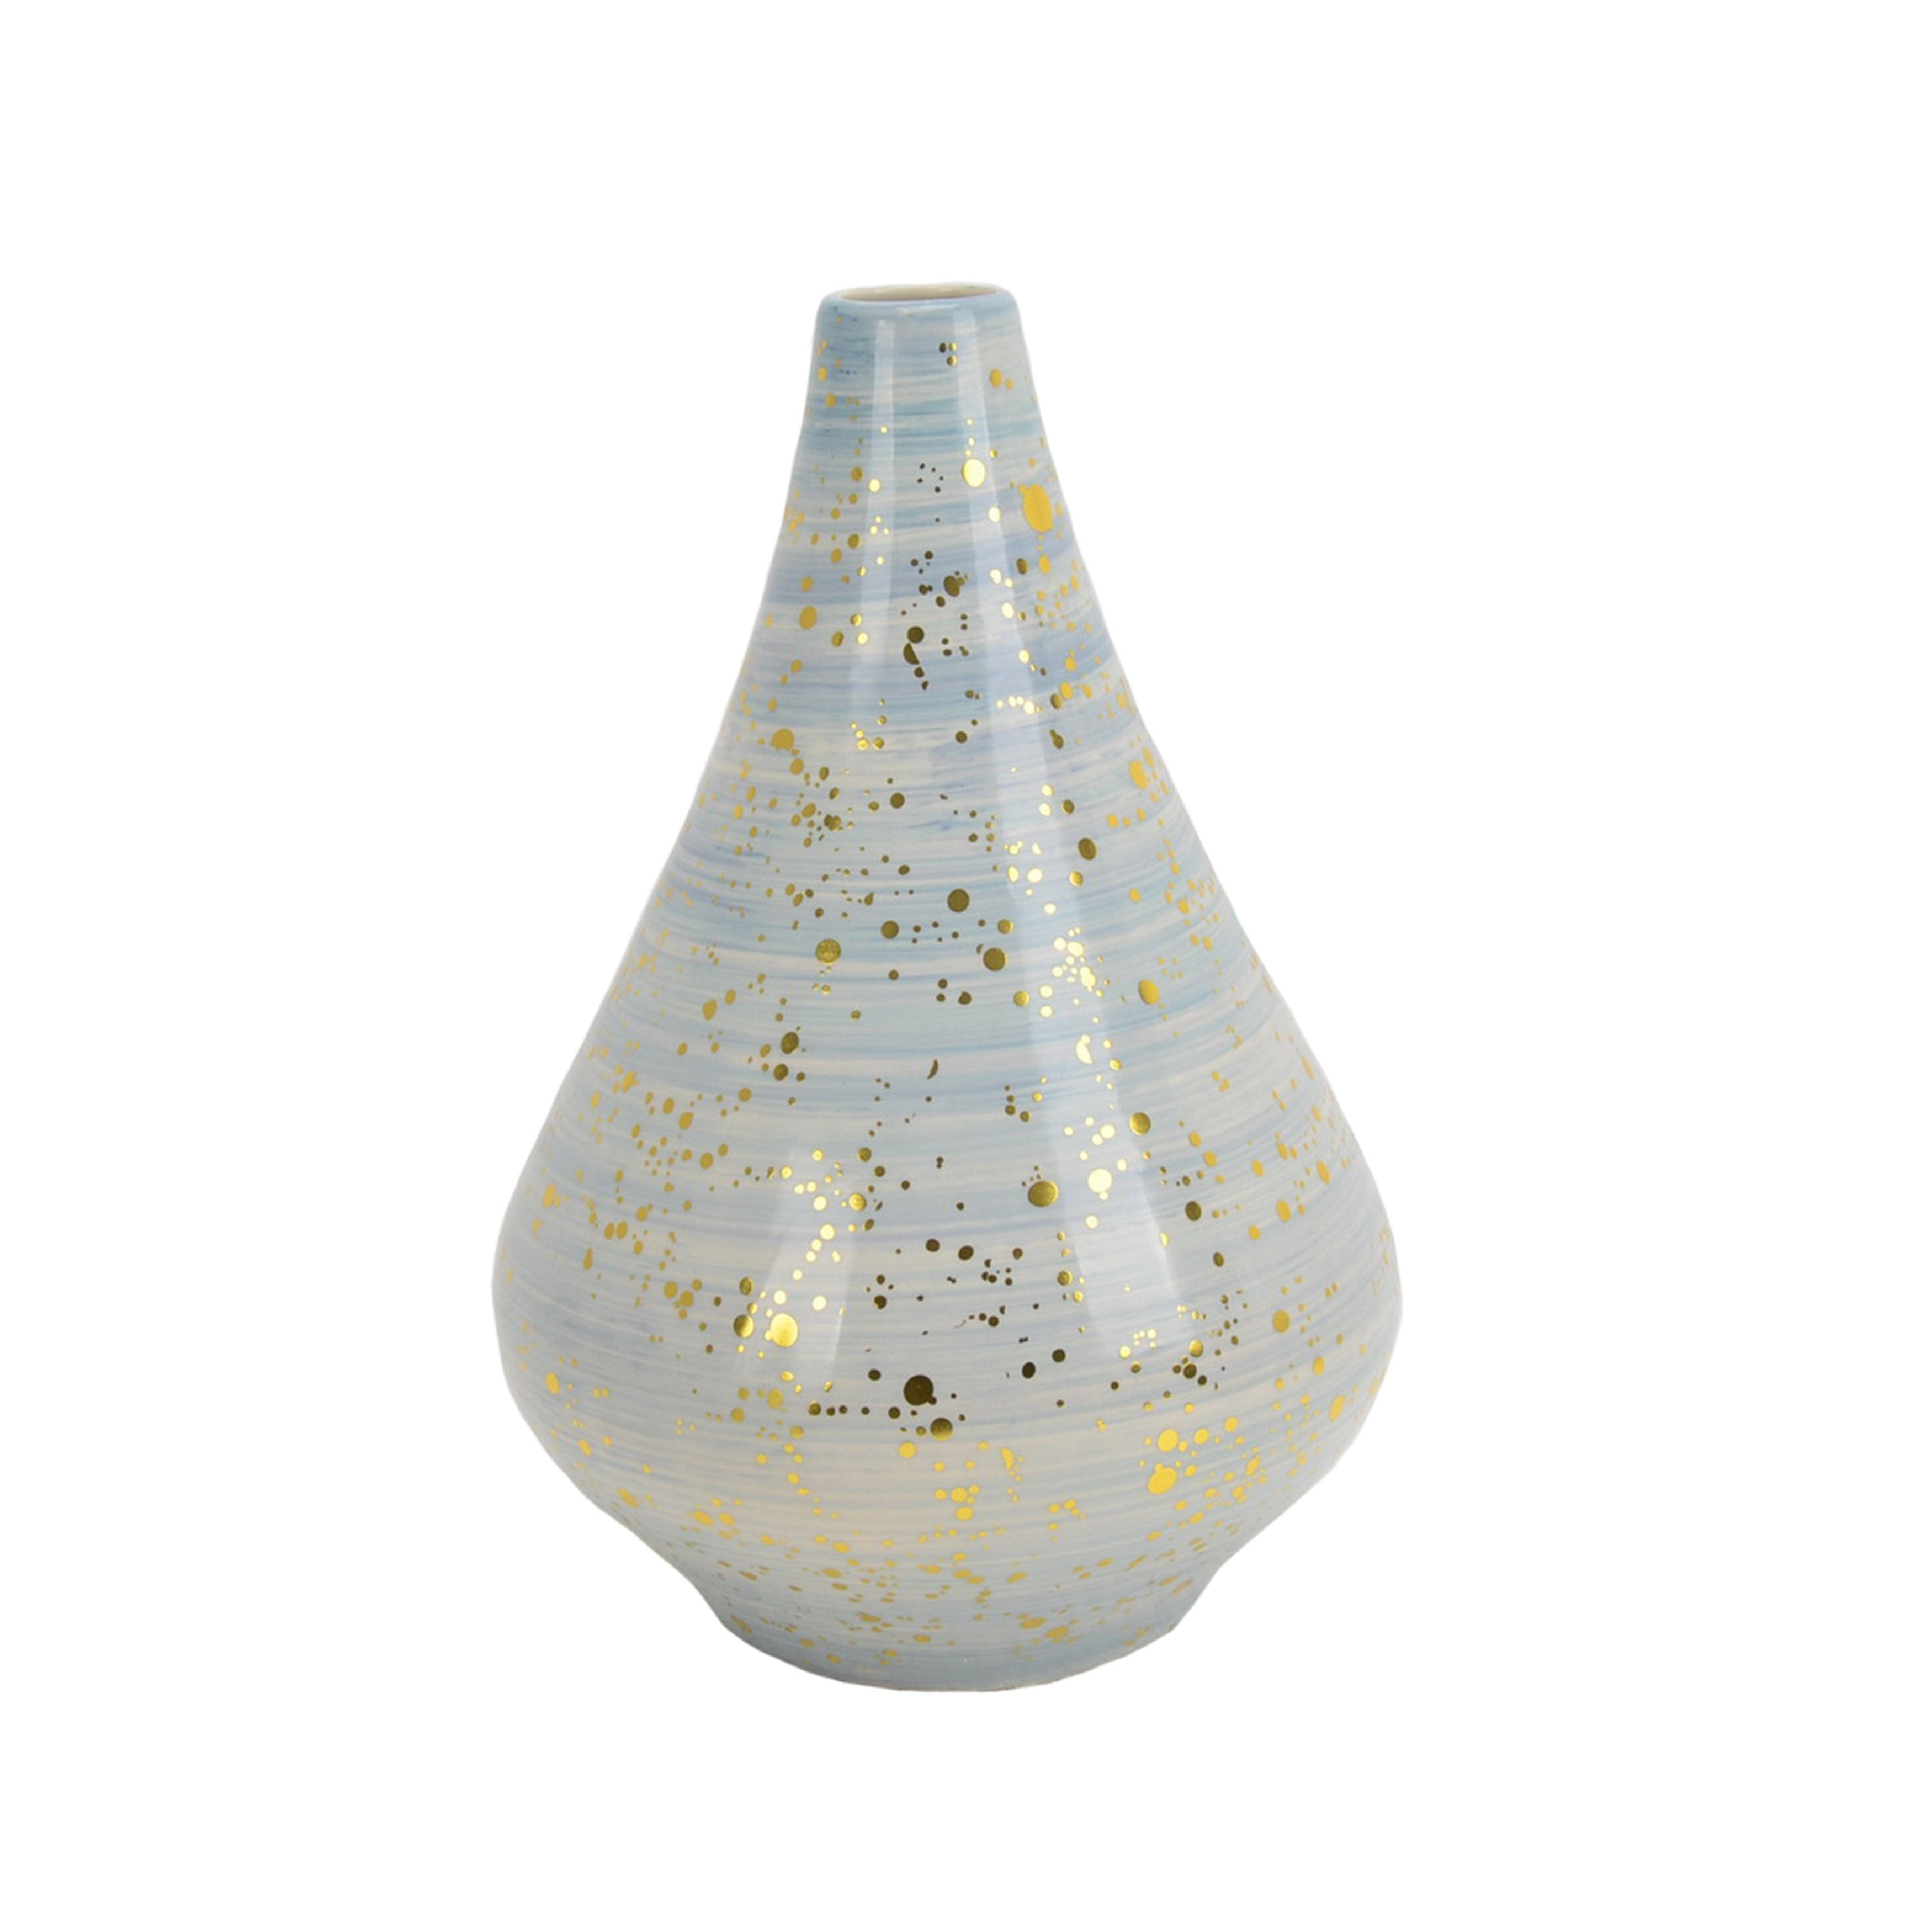 Gold Flecked Textured Ceramic Vase with Narrow Opening, Large, Blue